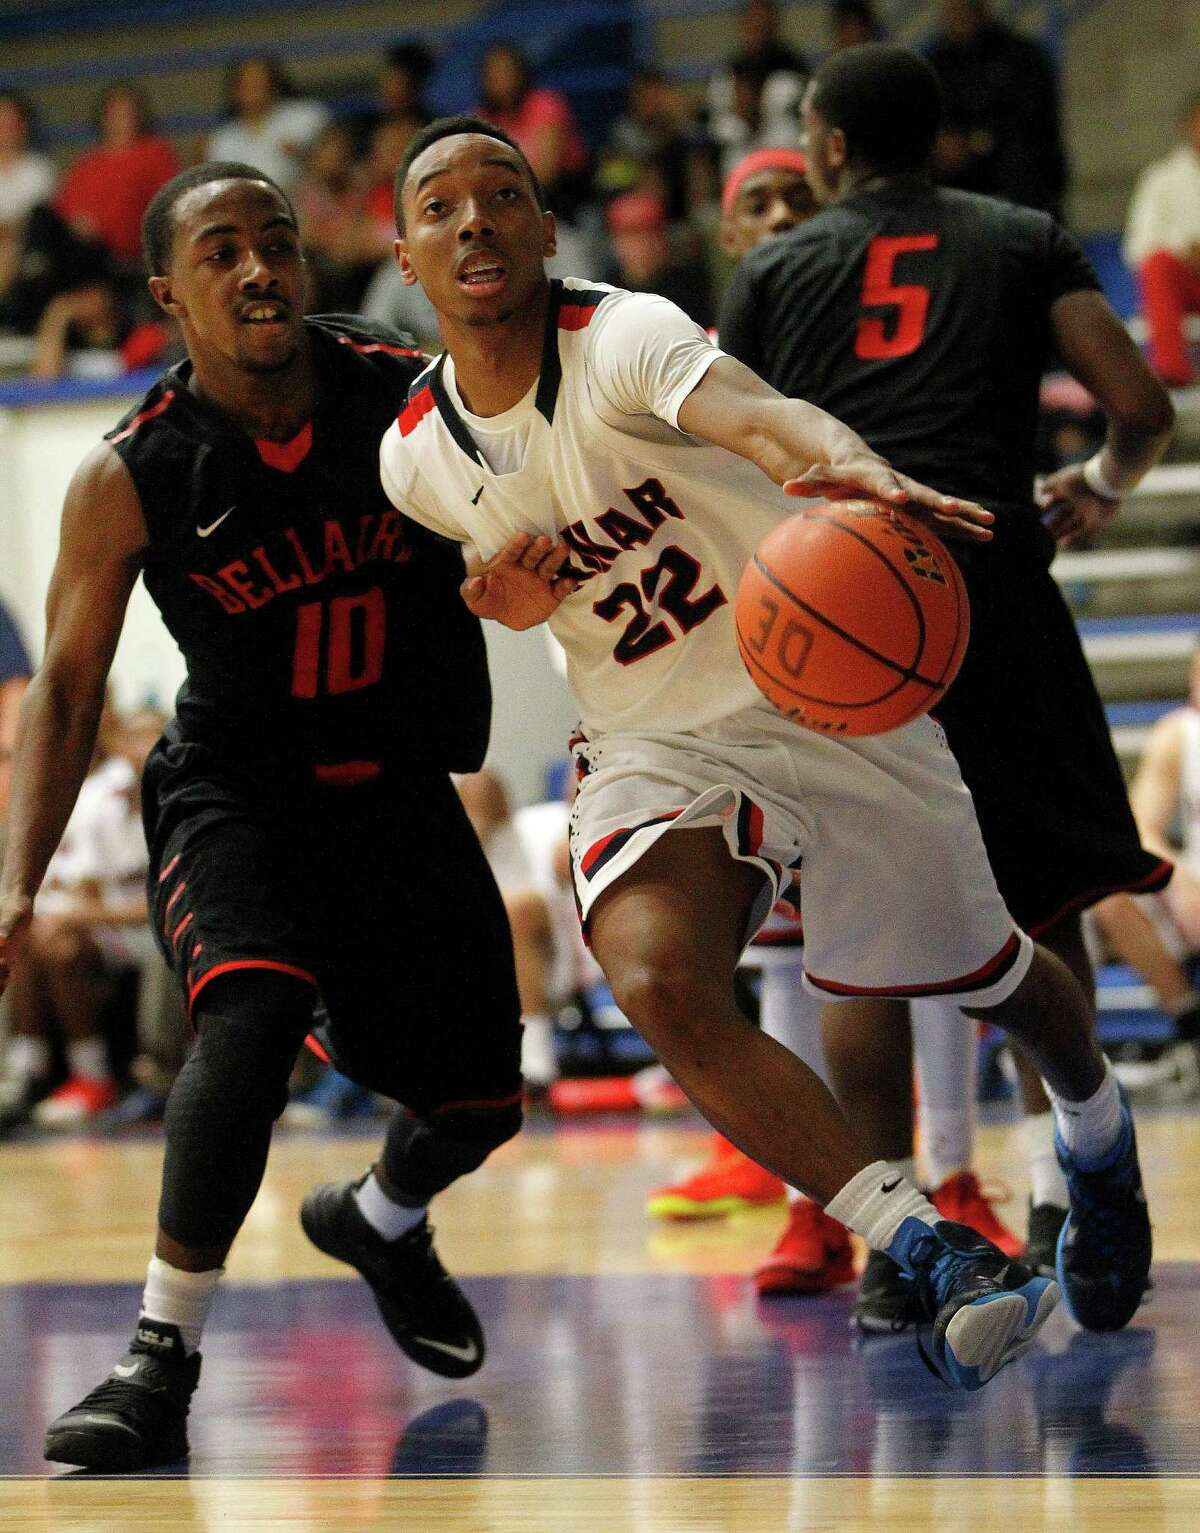 Lamar's Darrion Butler (22) reaches for a loose ball with Bellaire's Jarren Greenwood (10) during the first half of the Bellaire-Lamar High School boys basketball game at the Pavillion, Tuesday, Jan. 27, 2015, in Houston.